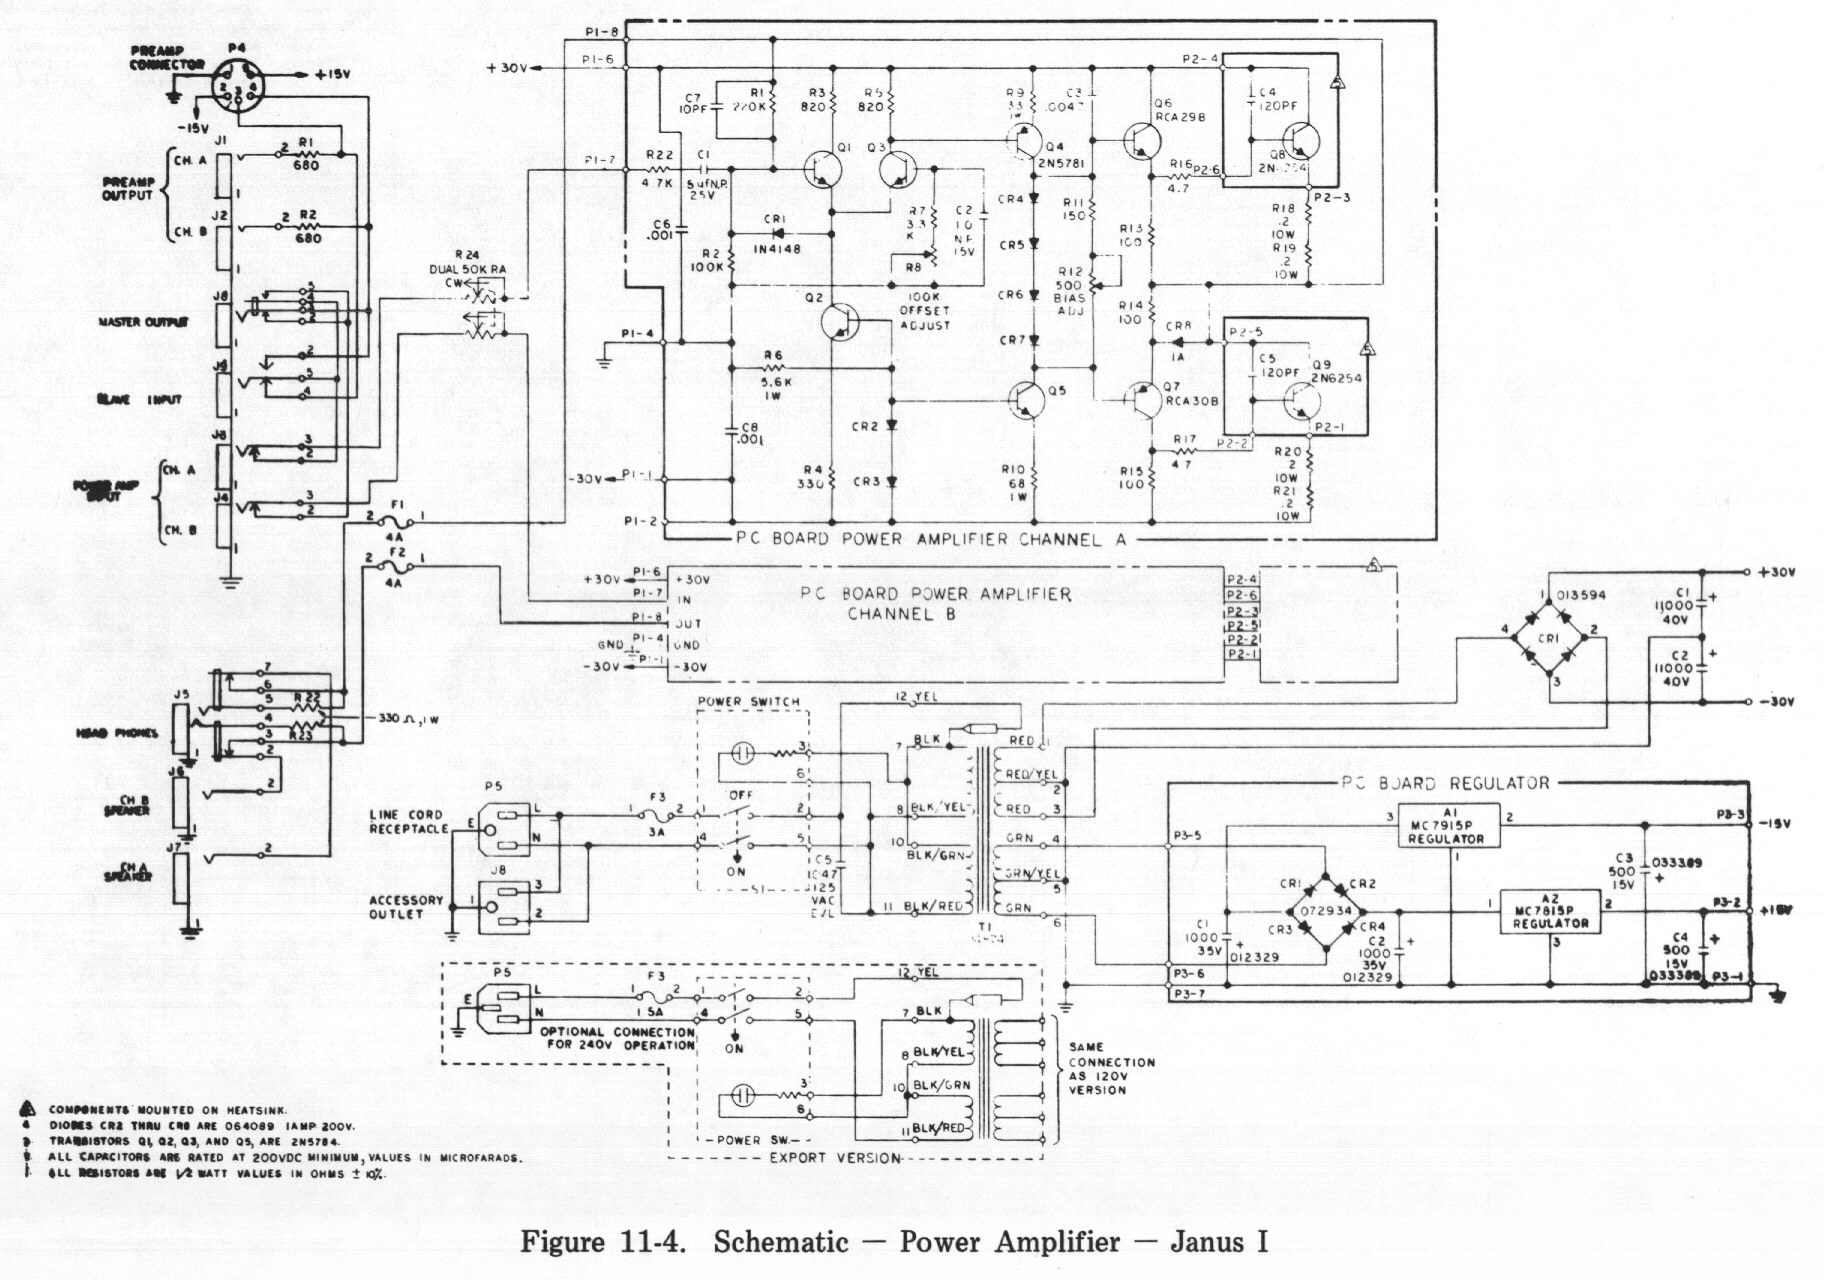 ... Schematic - Power Amplifier - Janus I ...